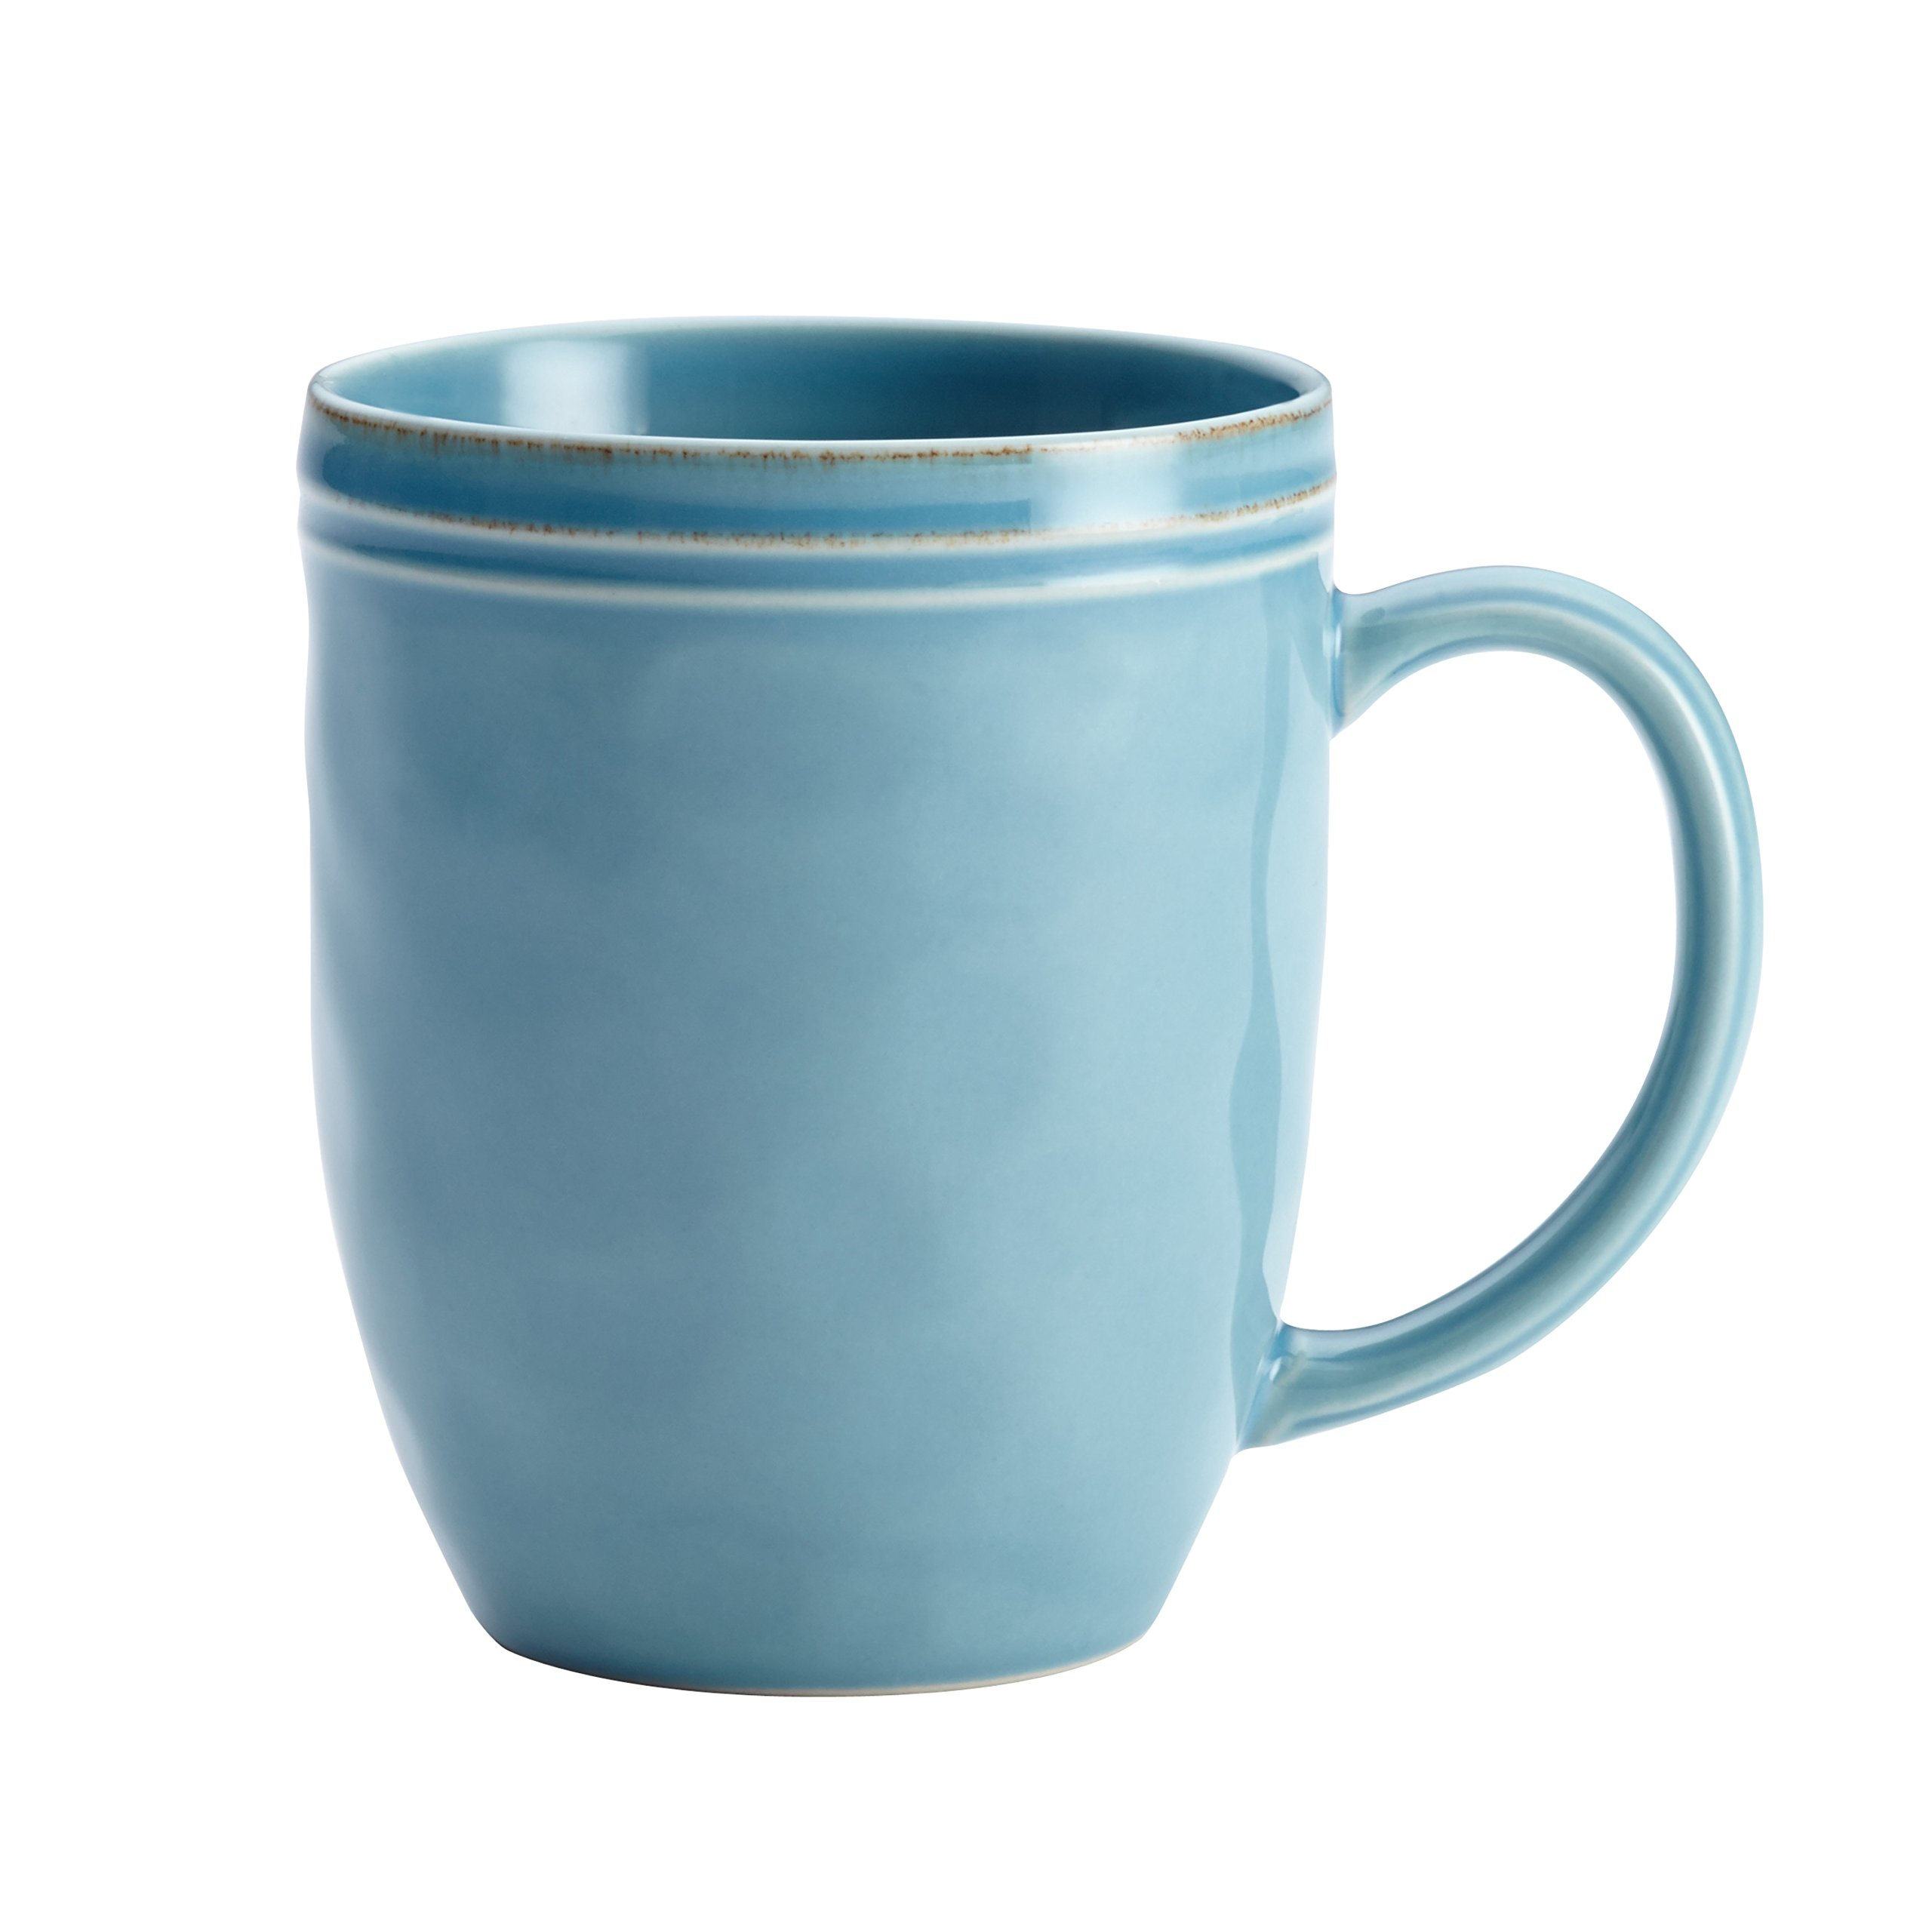 Rachael Ray Cucina Dinnerware 16-Piece Stoneware Dinnerware Set, Agave Blue by Rachael Ray (Image #6)